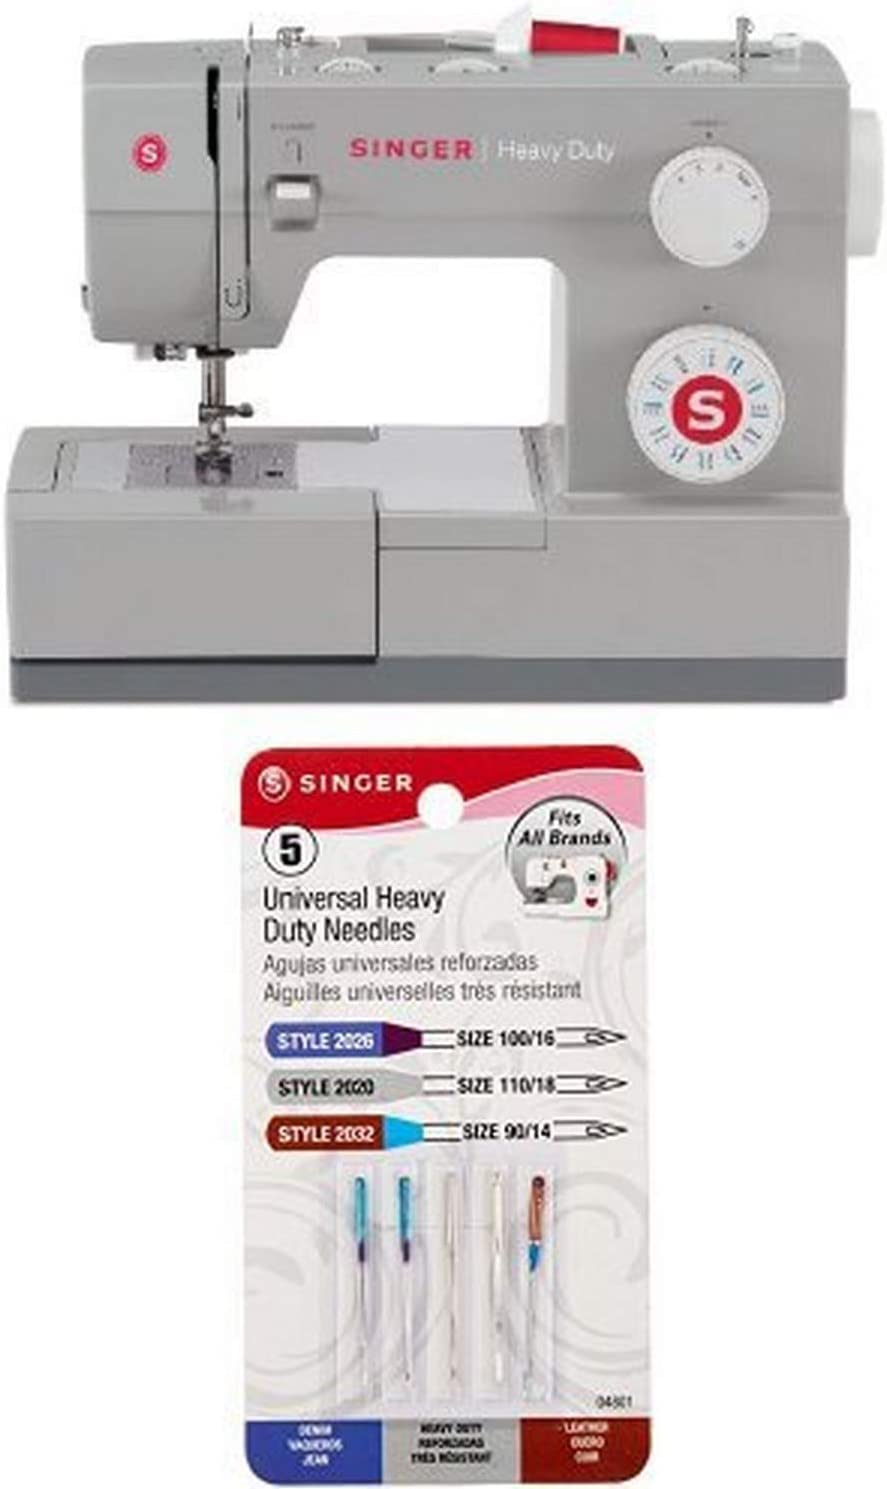 100% quality warranty! SINGER 4423 Cheap SALE Start Heavy Duty Extra-High Sewing Machine Speed wi